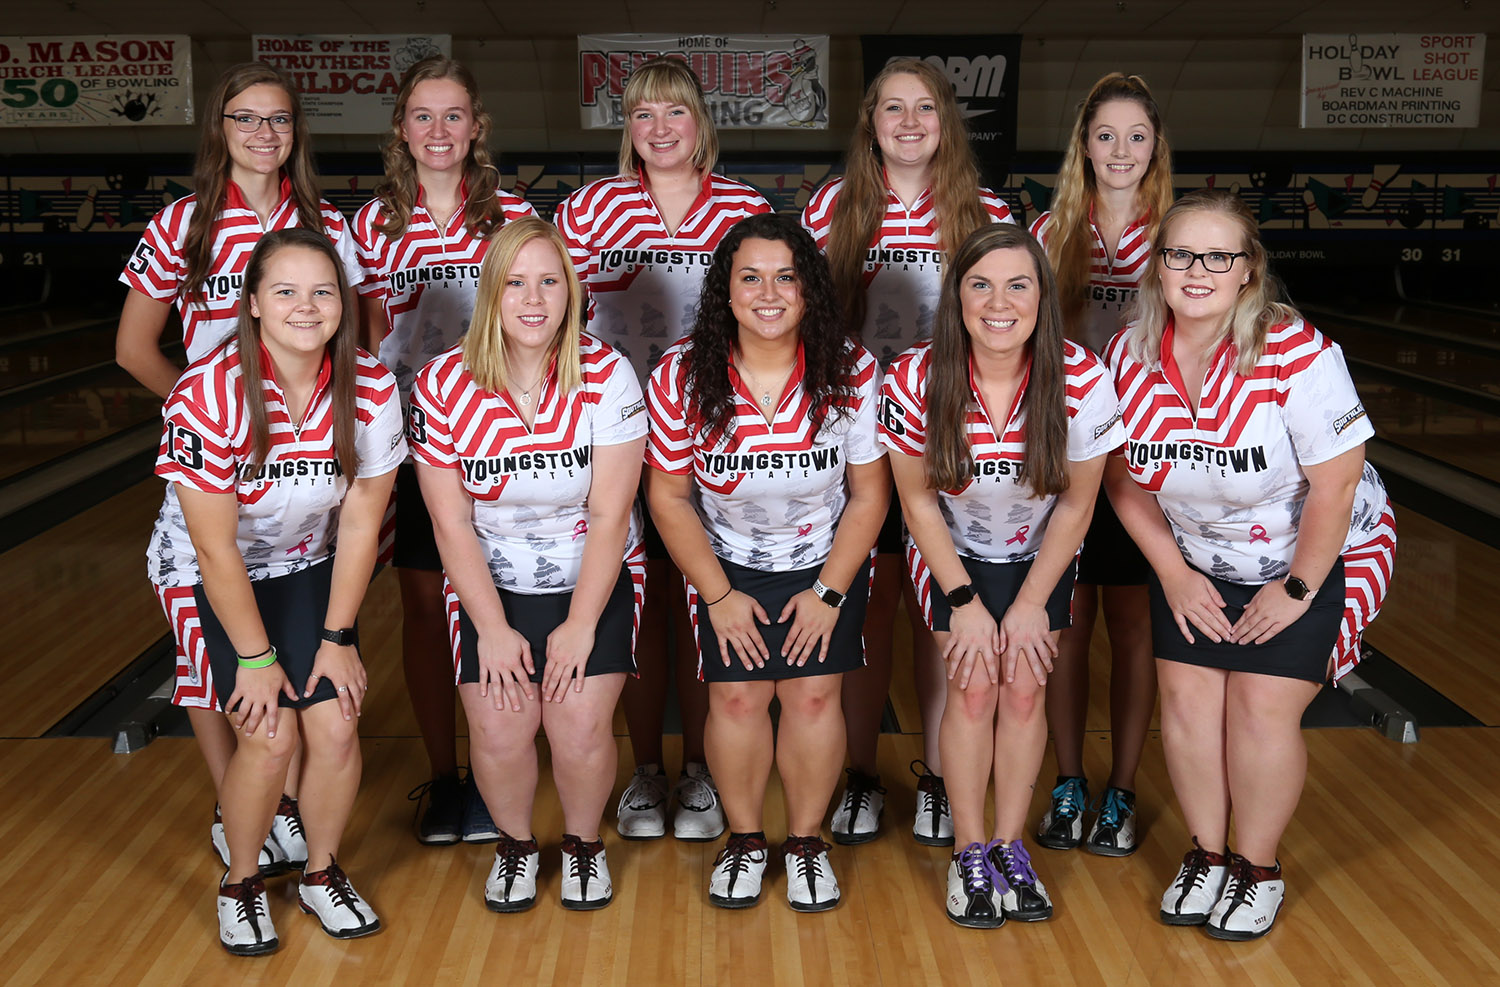 2018-19 Youngstown State bowling team photo